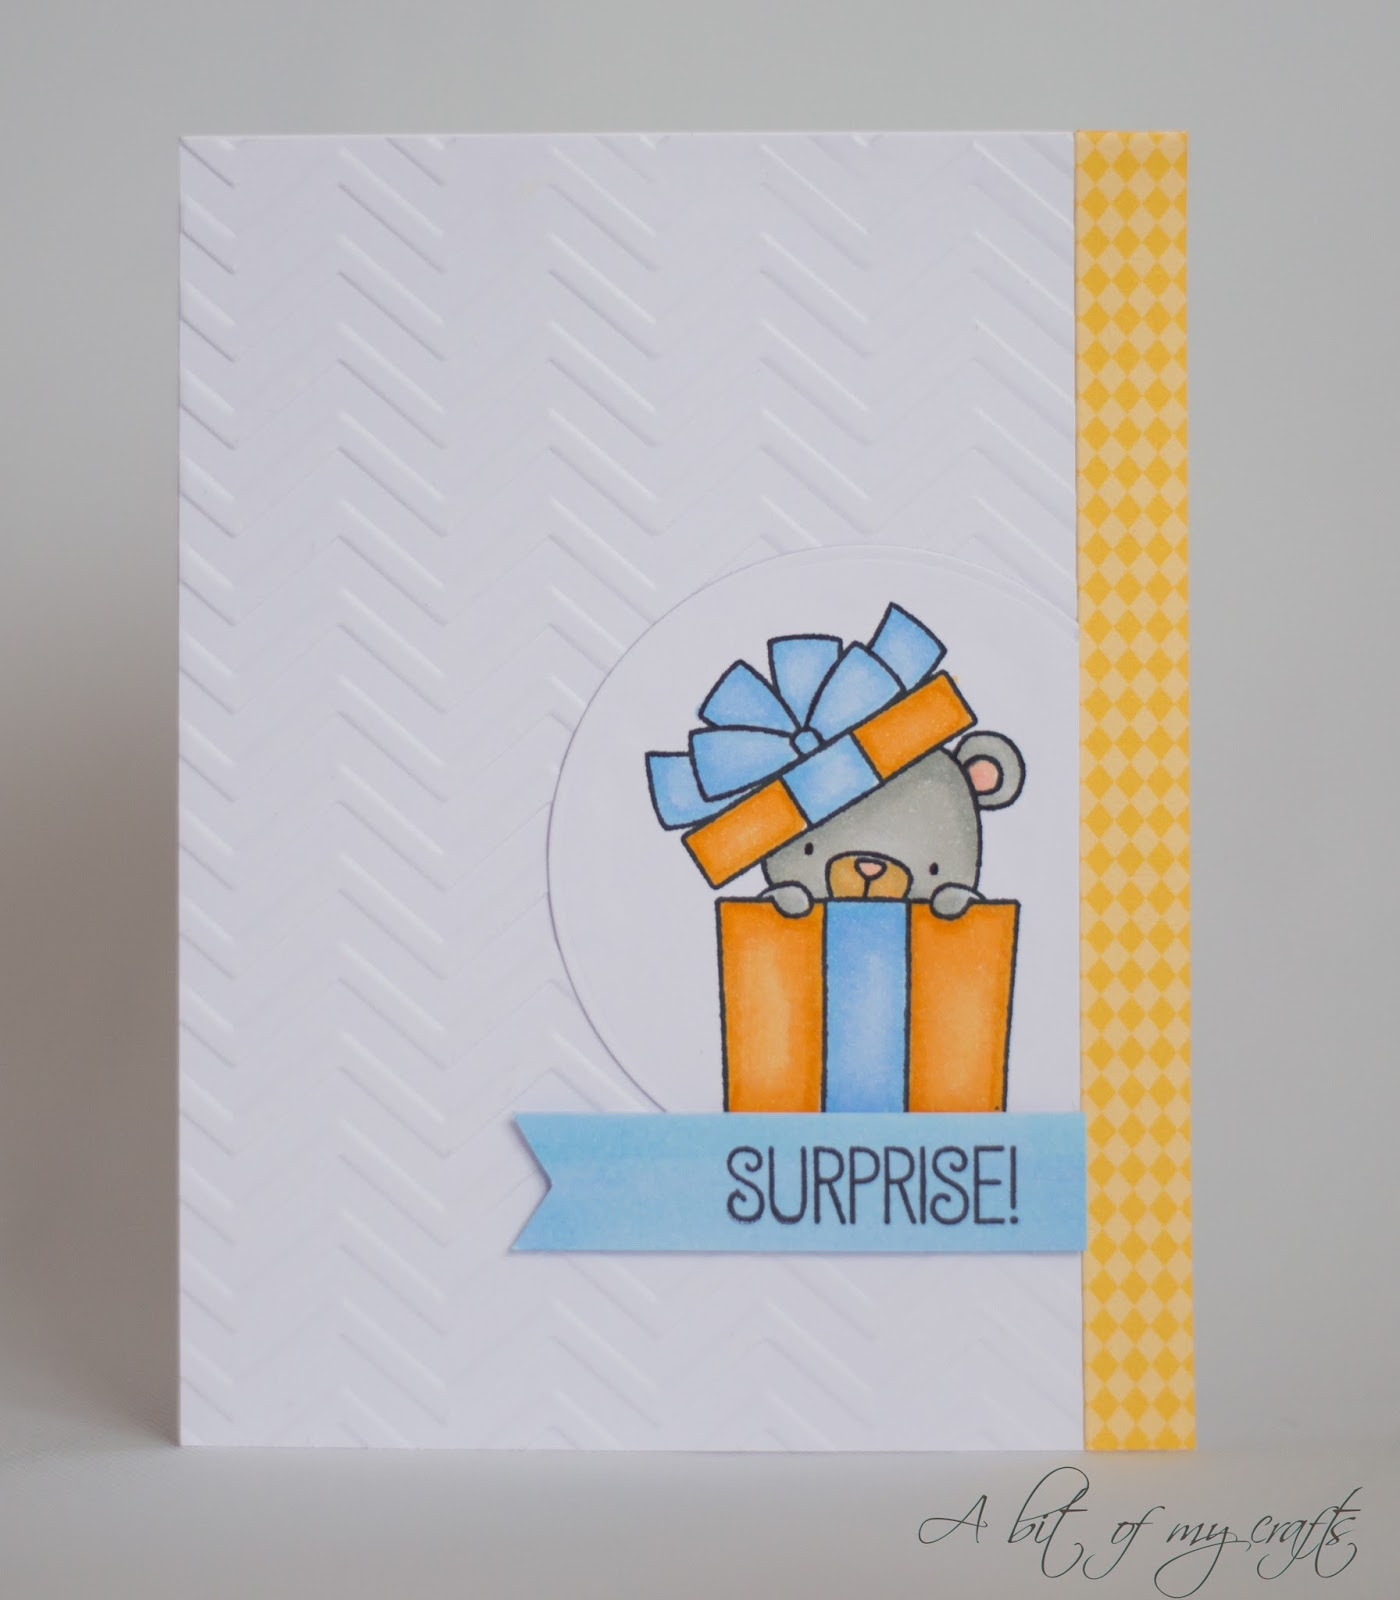 A bit of my crafts clean and simple birthday card using mft stamps clean and simple birthday card using mft stamps bookmarktalkfo Image collections